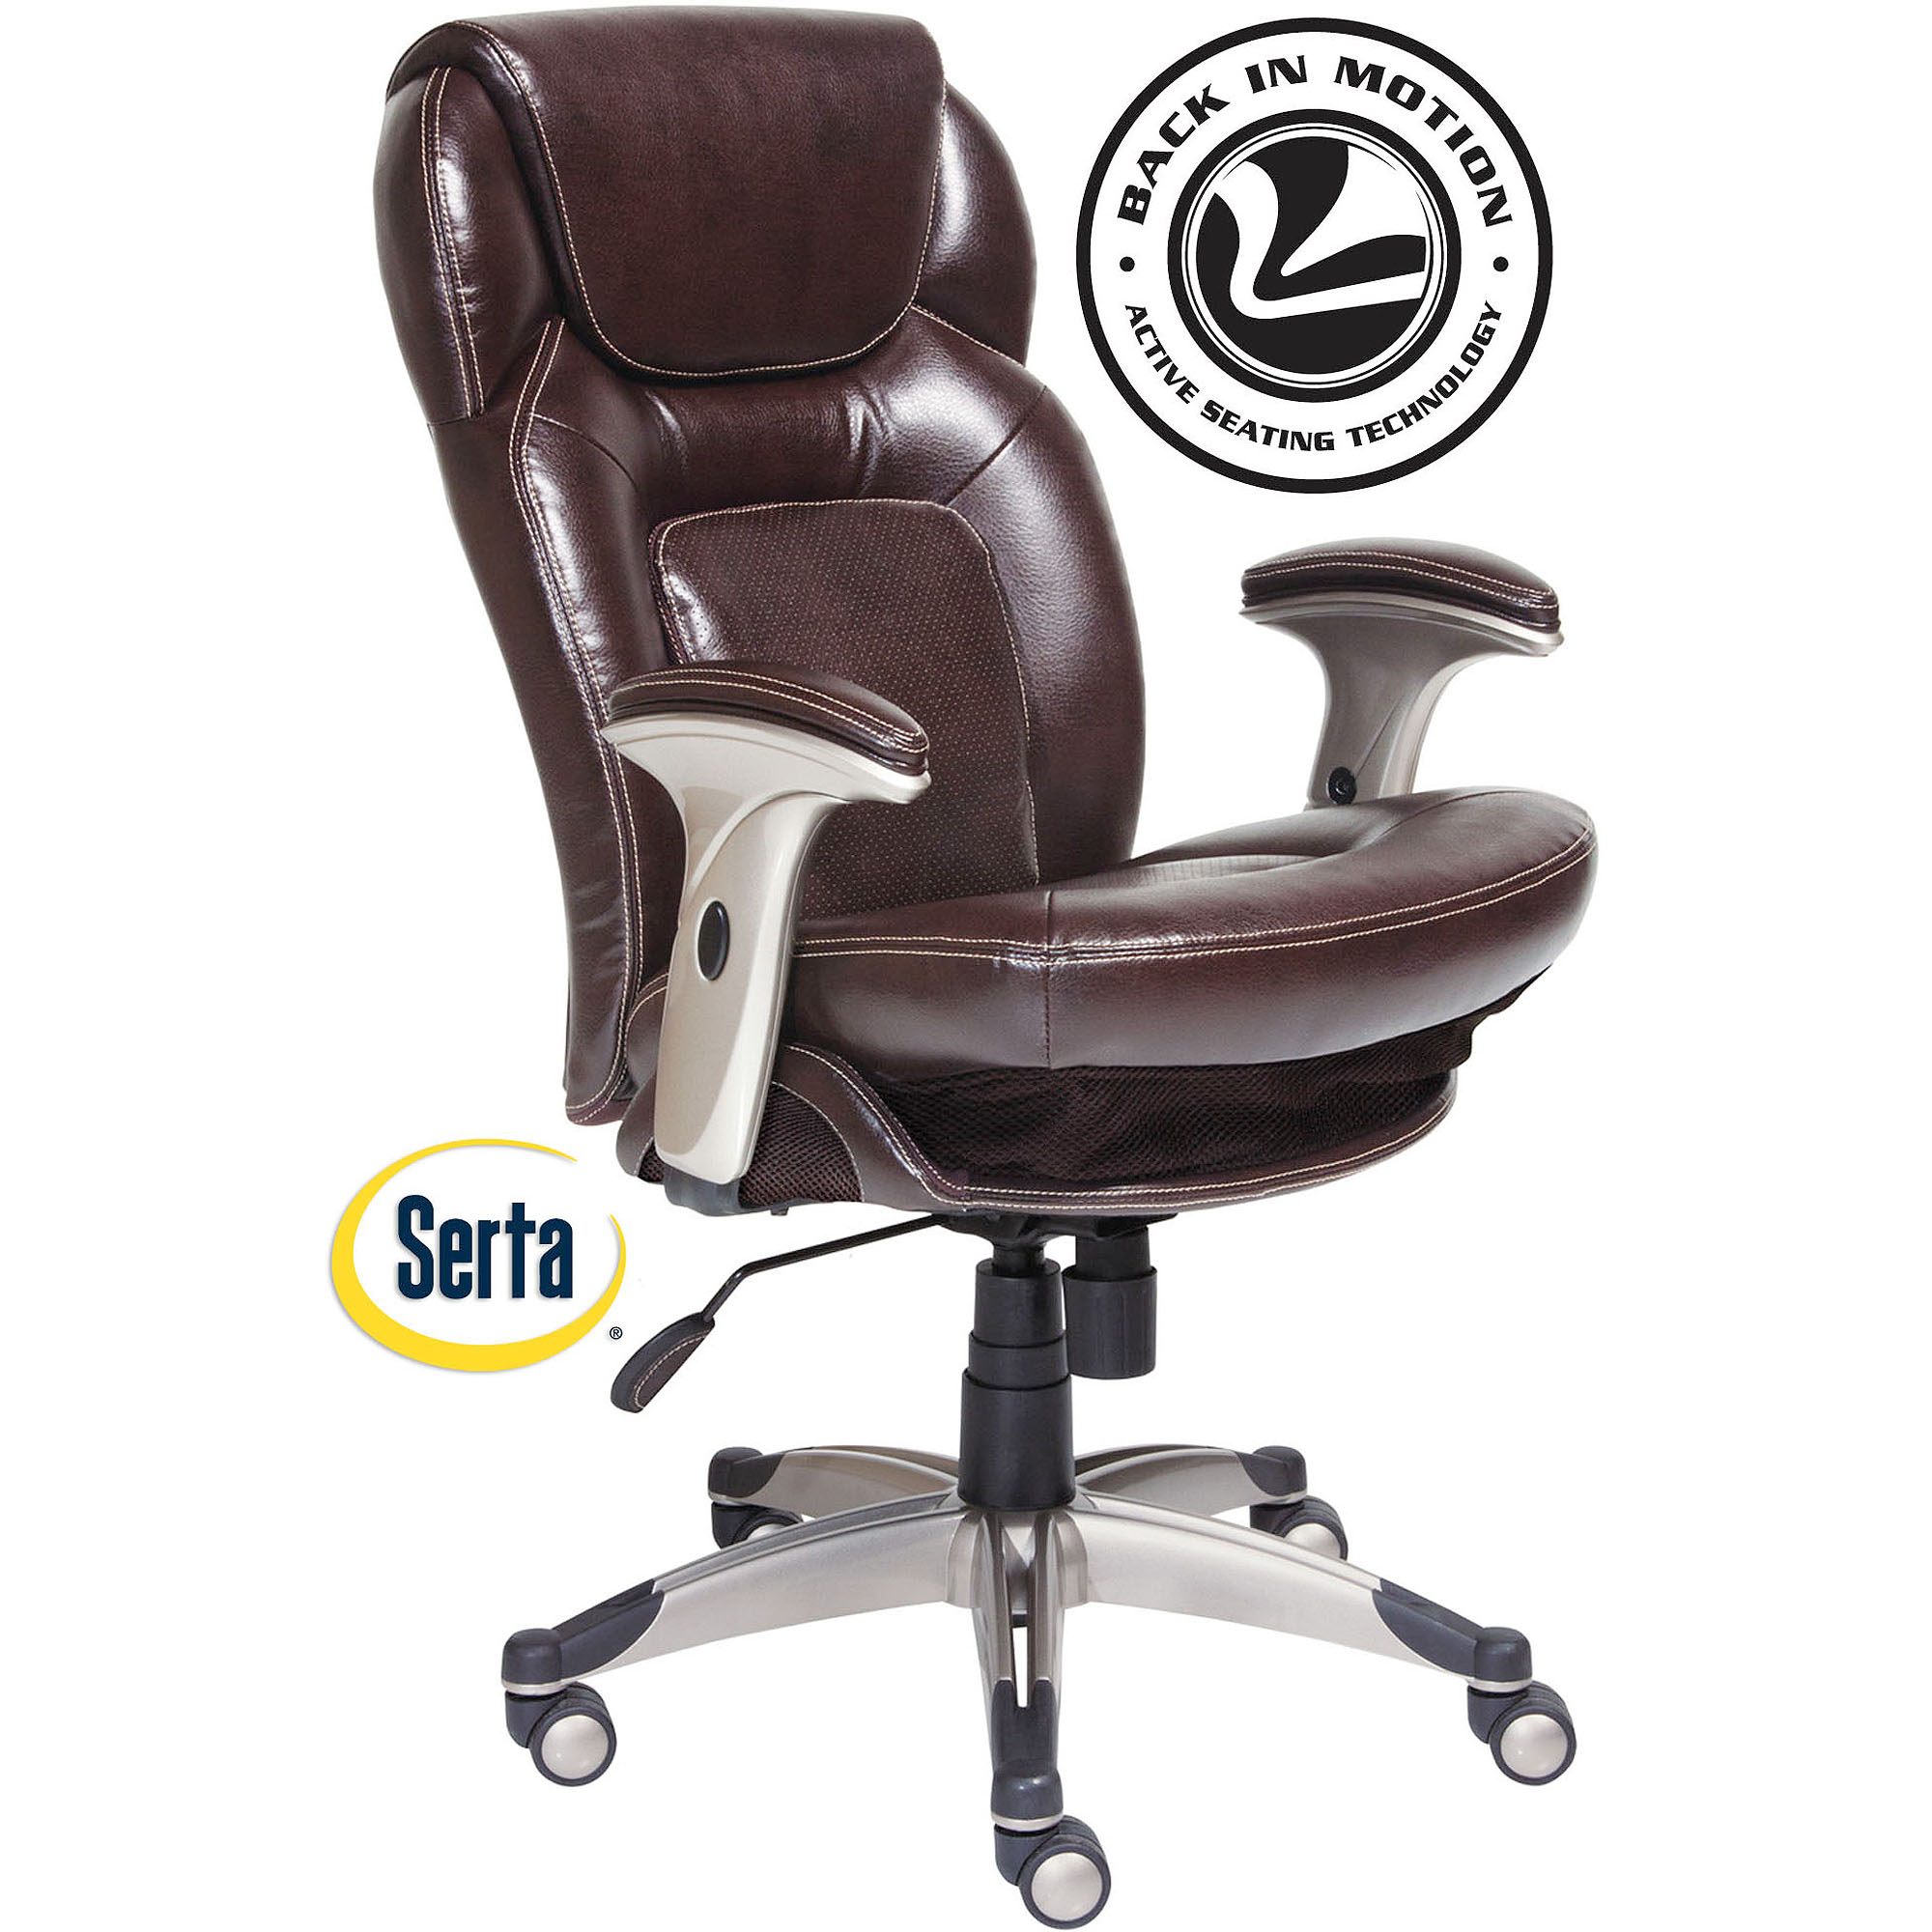 Serta Back in Motion Health and Wellness Mid-Back Bonded Leather Office Chair, Frye Chocolate